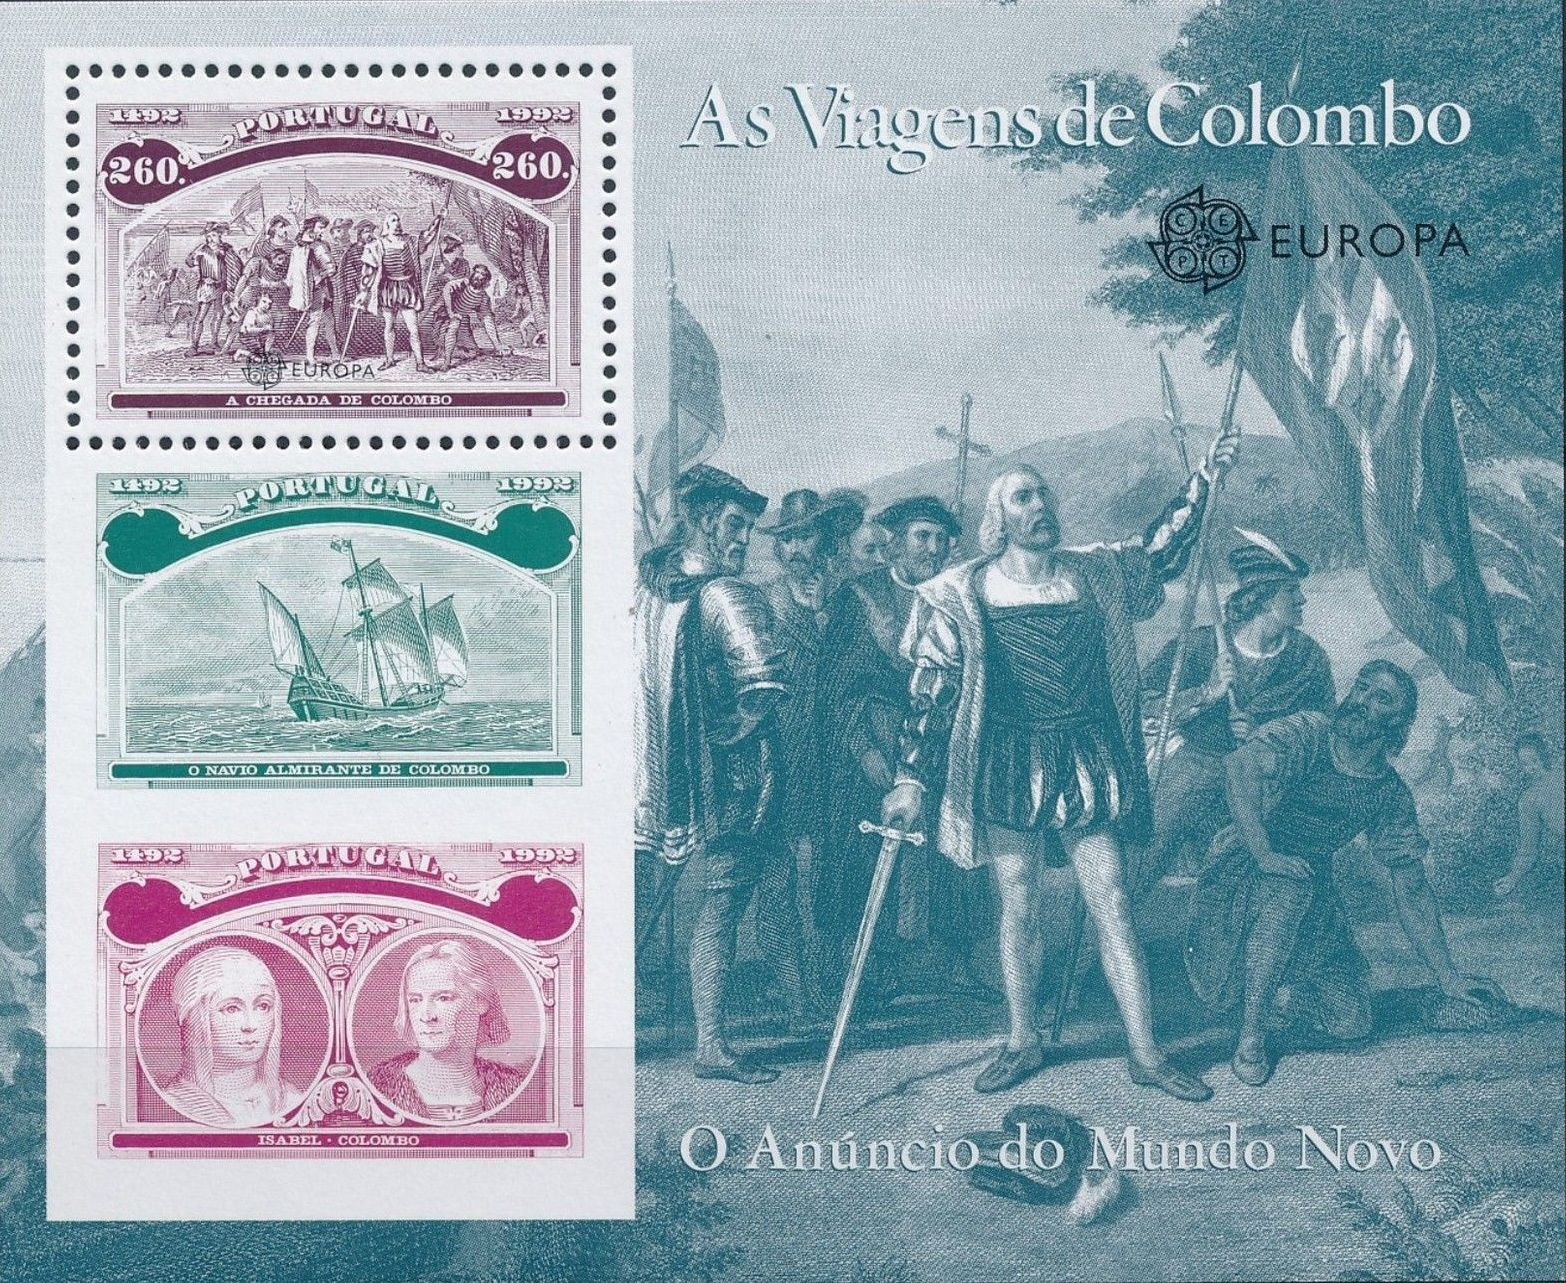 Portugal 1992 500th Anniversary of the Discovery of America SSc.jpg